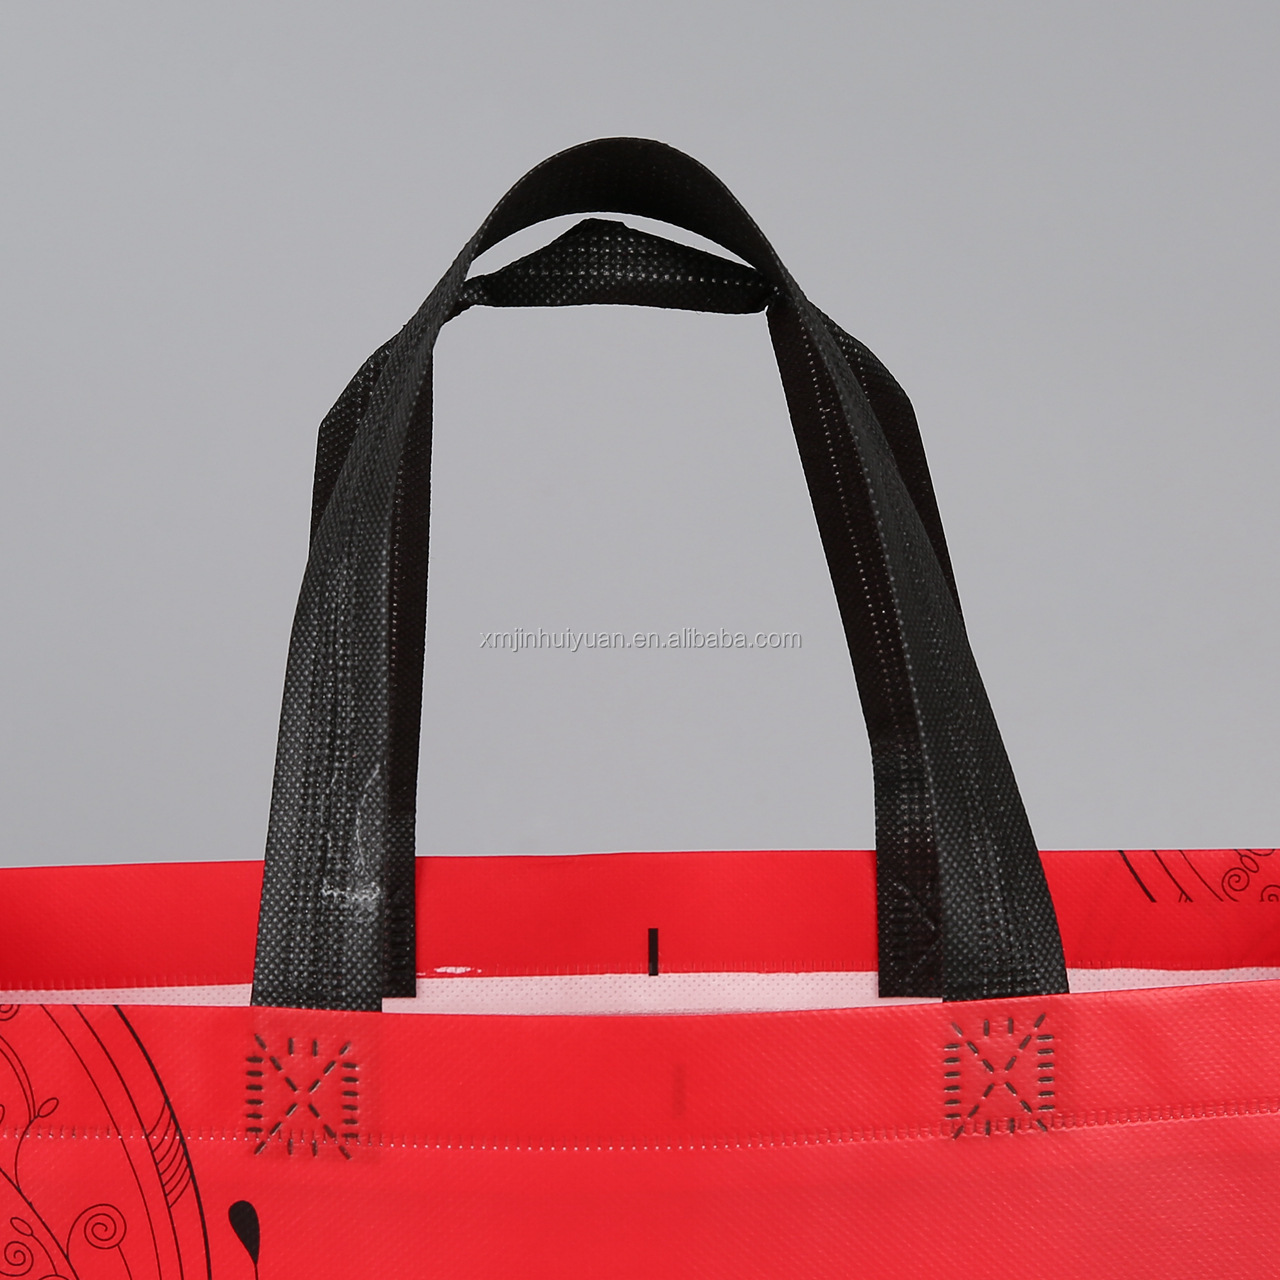 Promotional Customized Laminated Eco Fabric Tote Non-Woven Shopping Bag, Recyclable PP Non Woven Bags